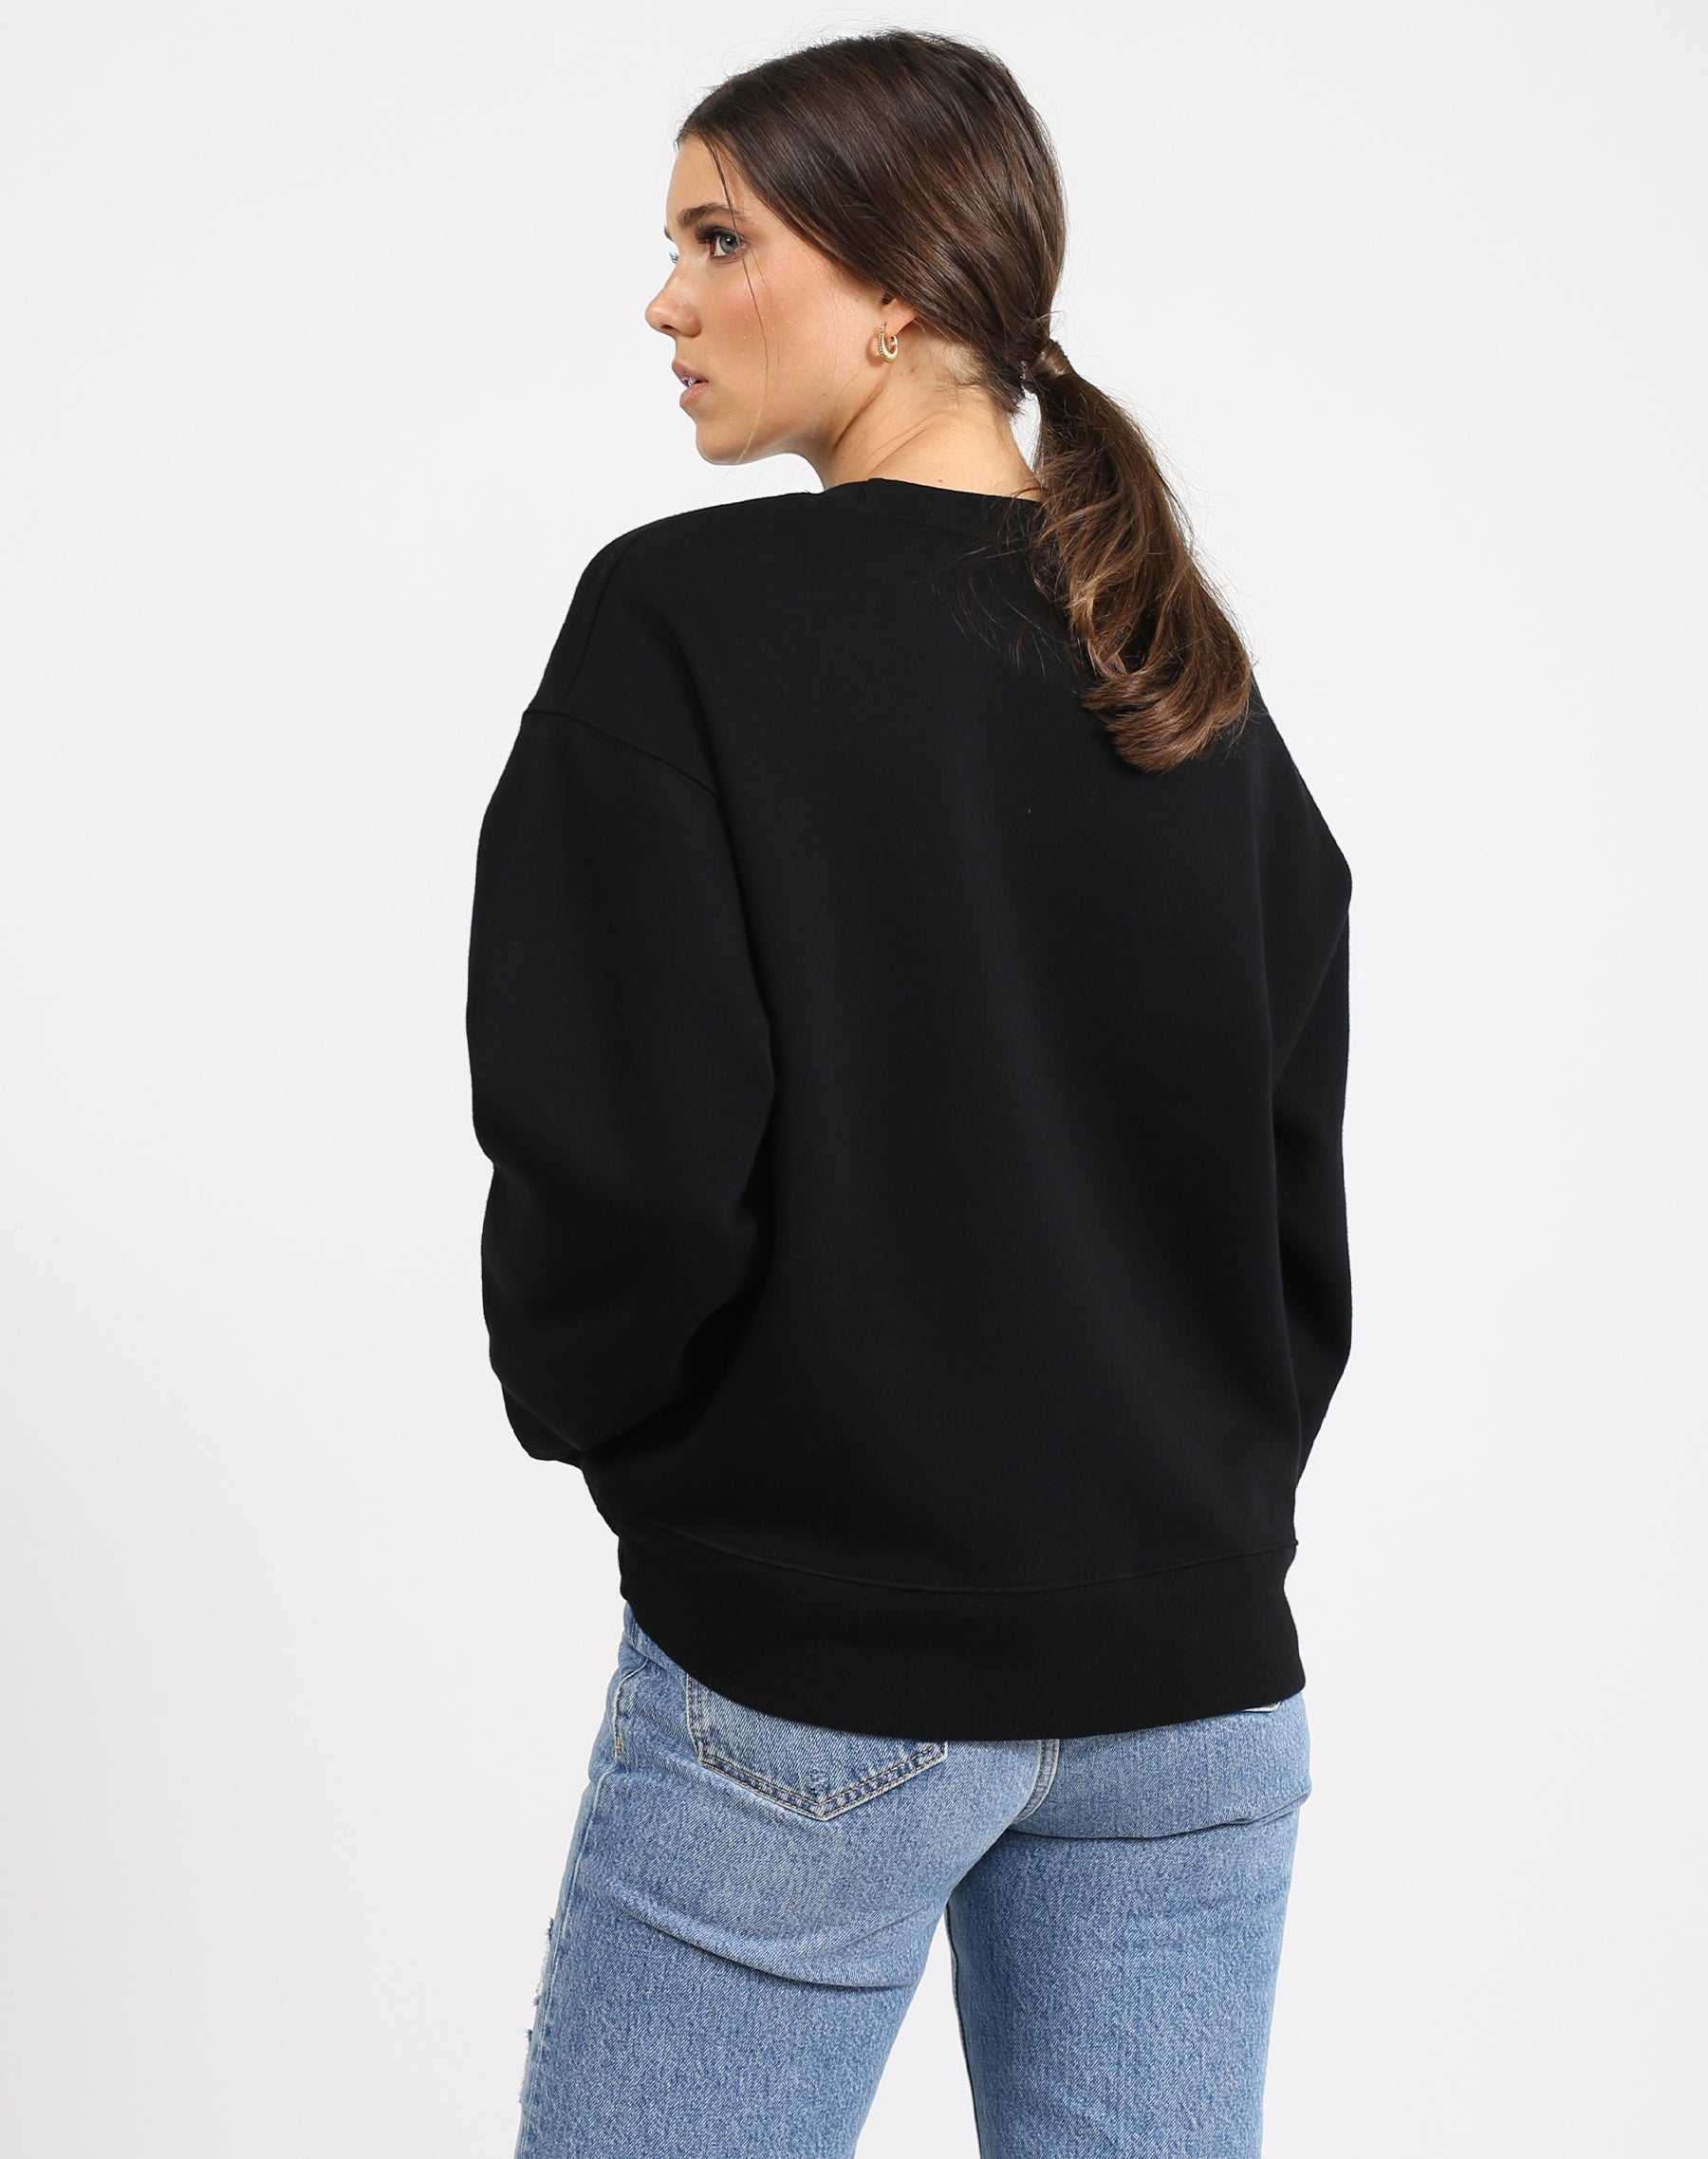 This is an image of the back of a model wearing the Jet Black Zebra Varsity Step Sister Crew Neck Sweatshirt in Black by Brunette the Label.